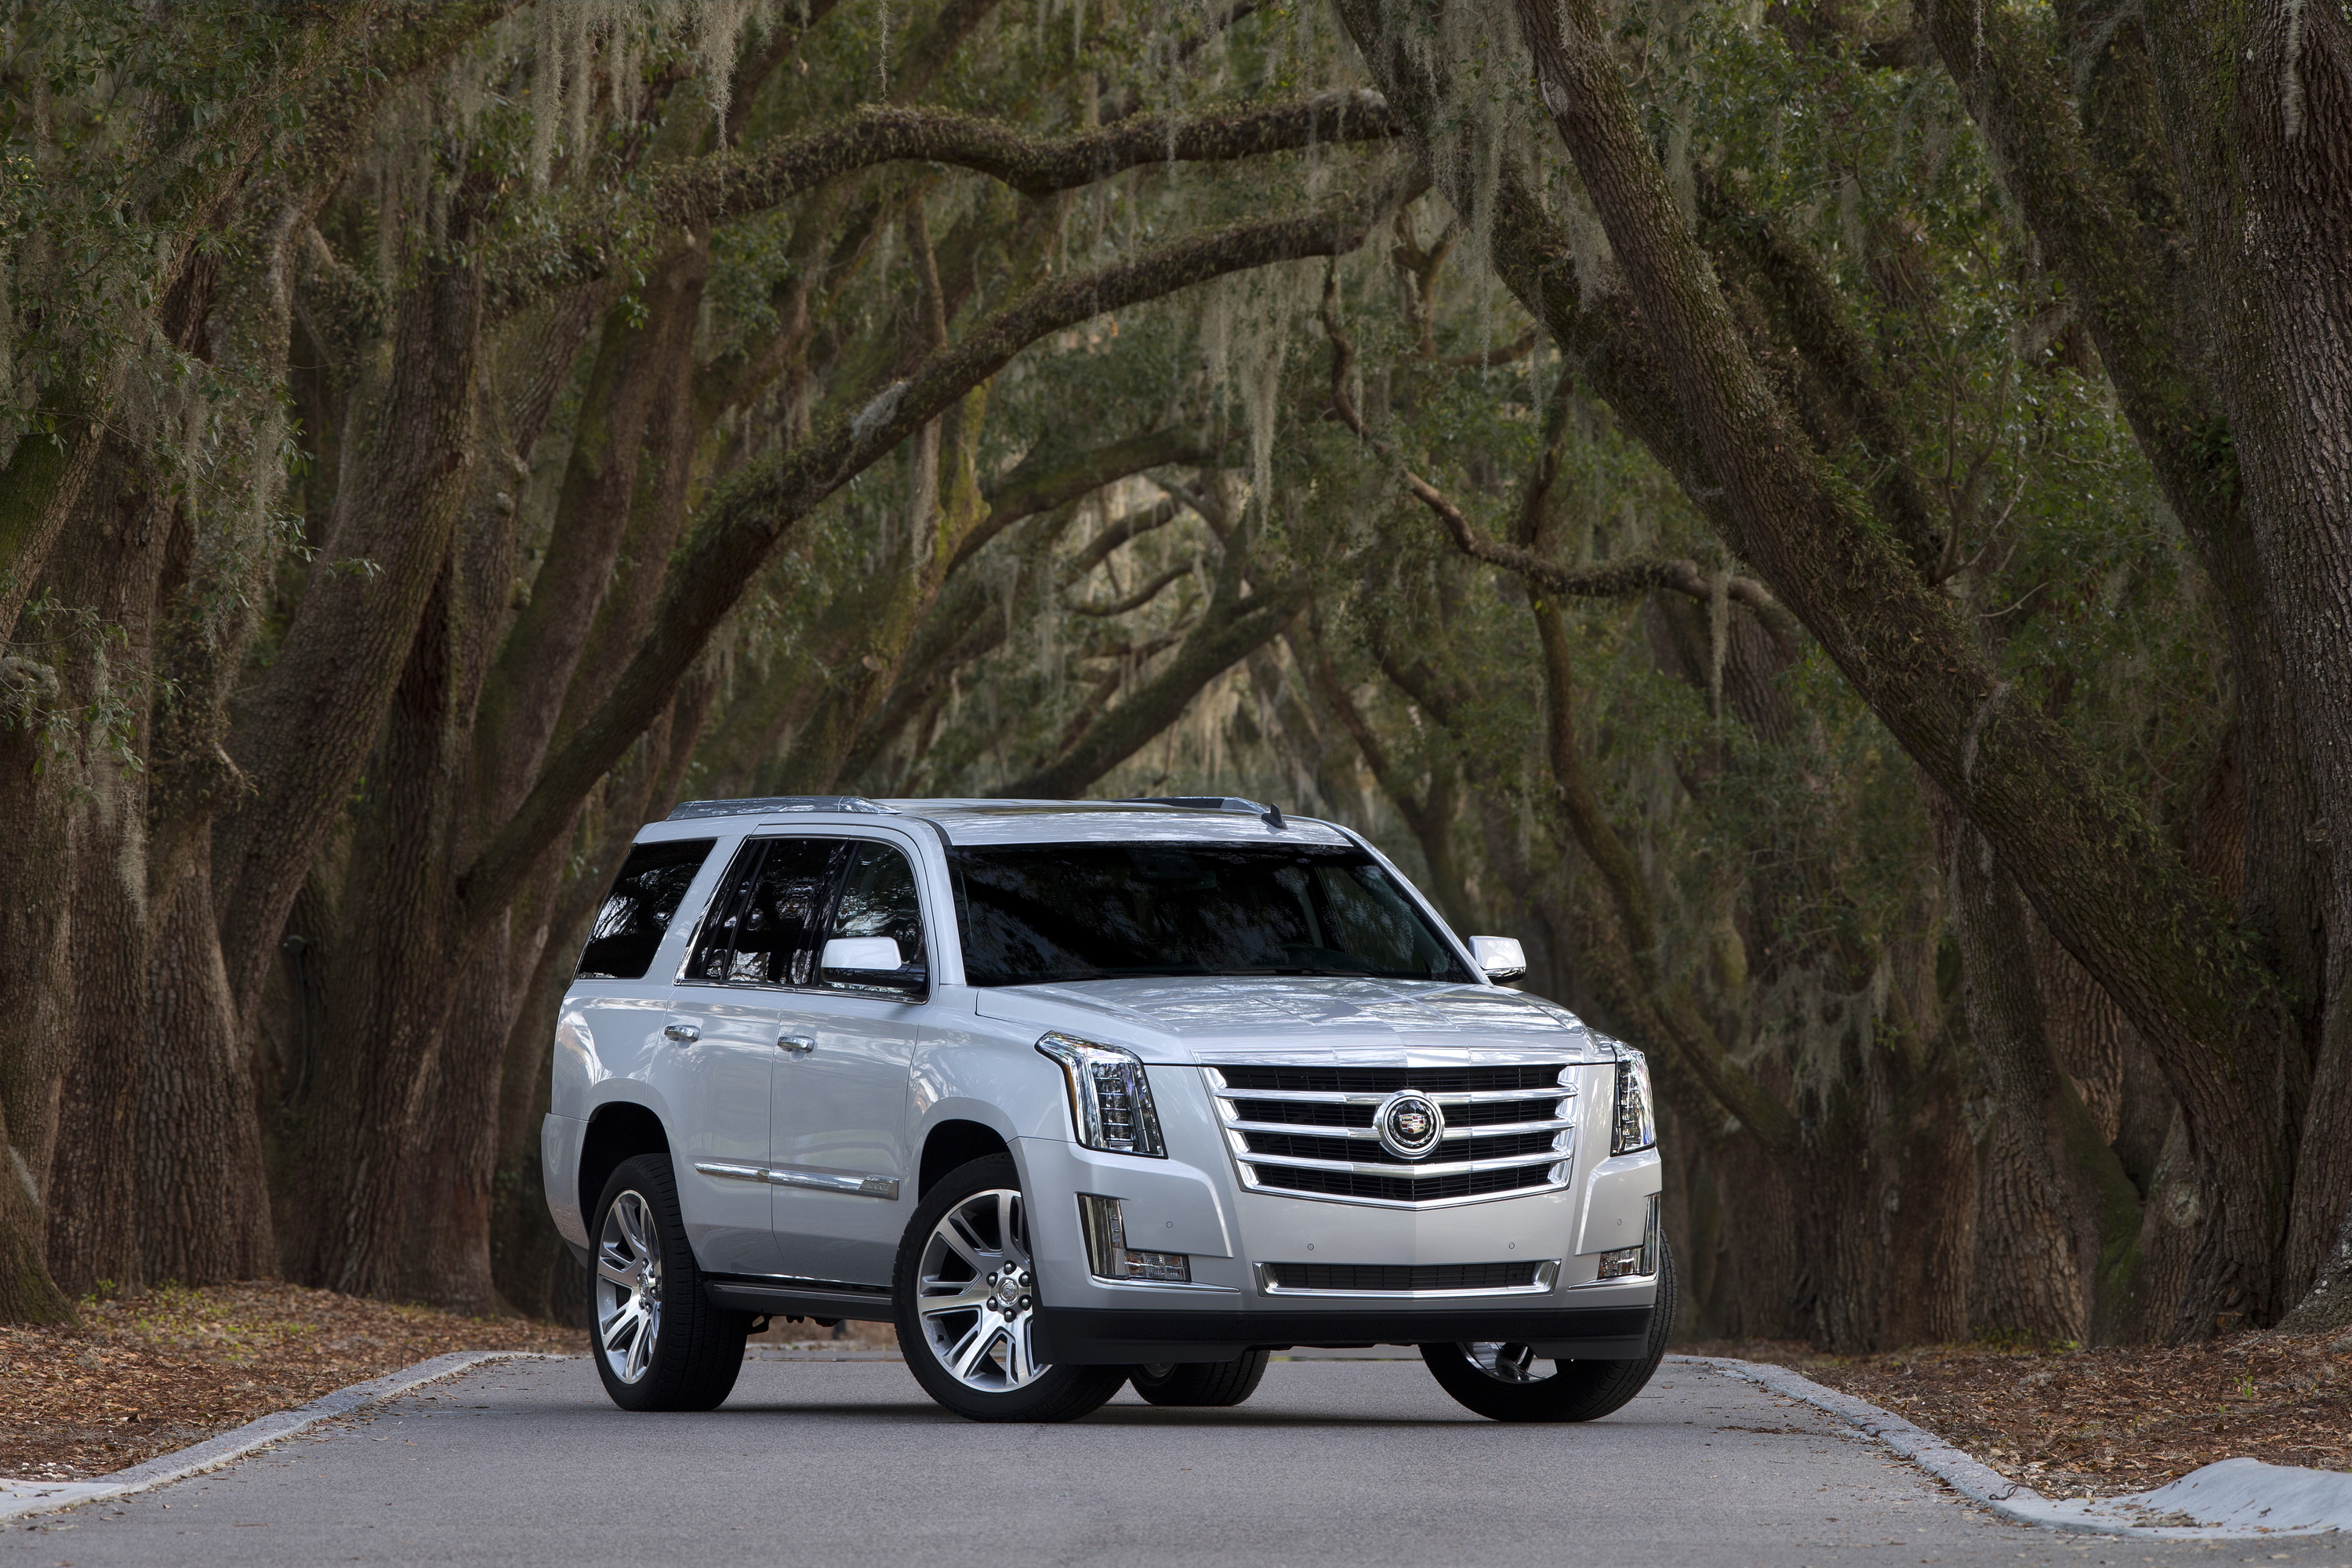 platinum escalade standard luxury colors pricing and from premium cadillac levels buyers must have options trim guide leathers esv